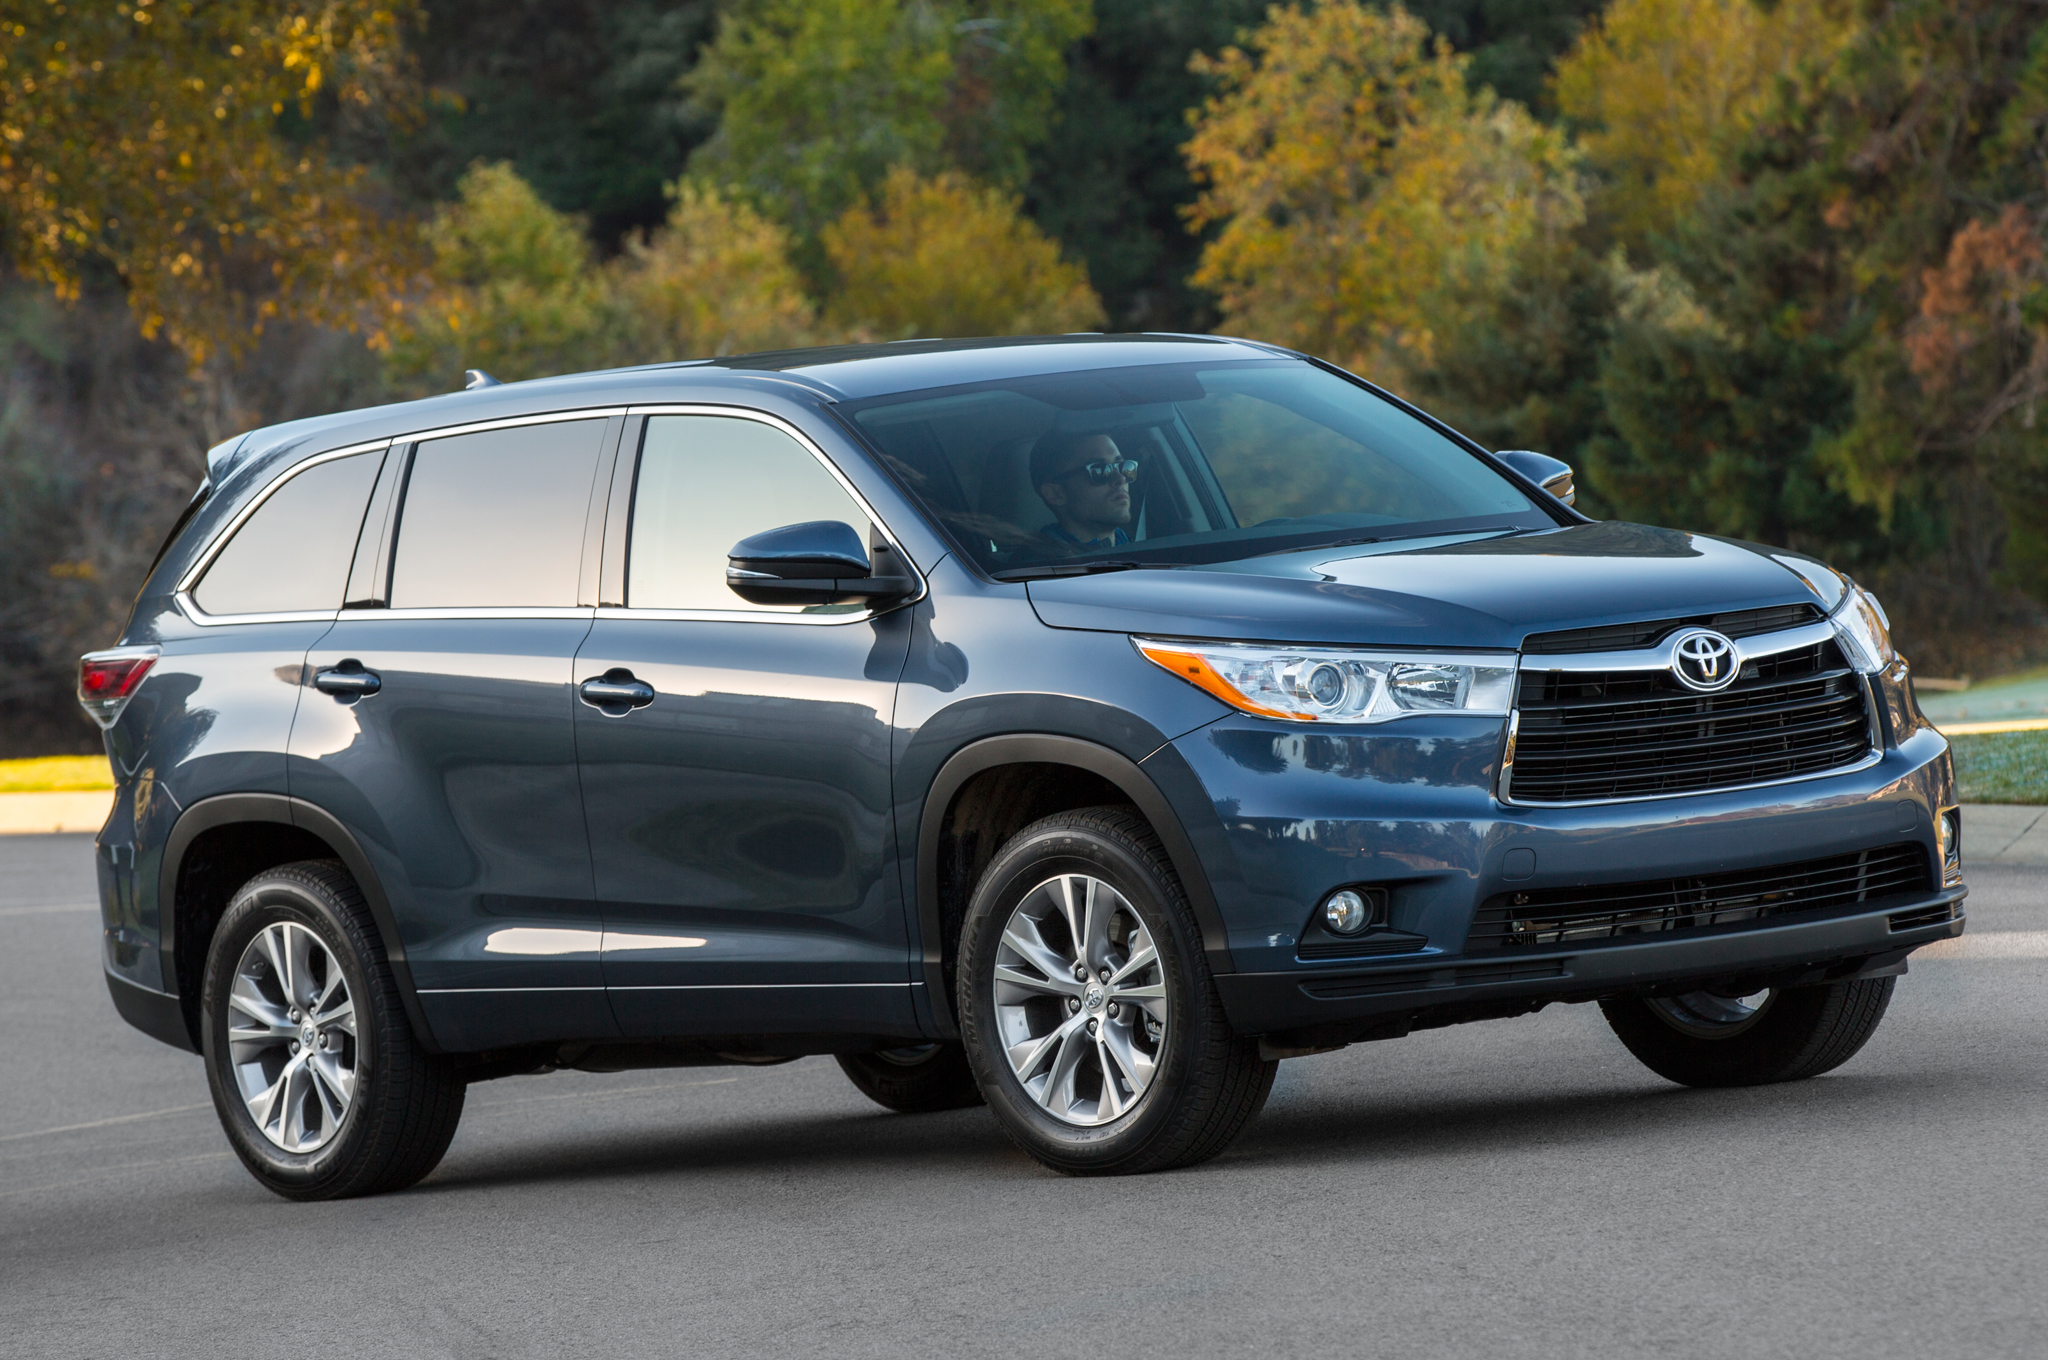 hight resolution of 2014 toyota highlander recalled for problem with seat belt